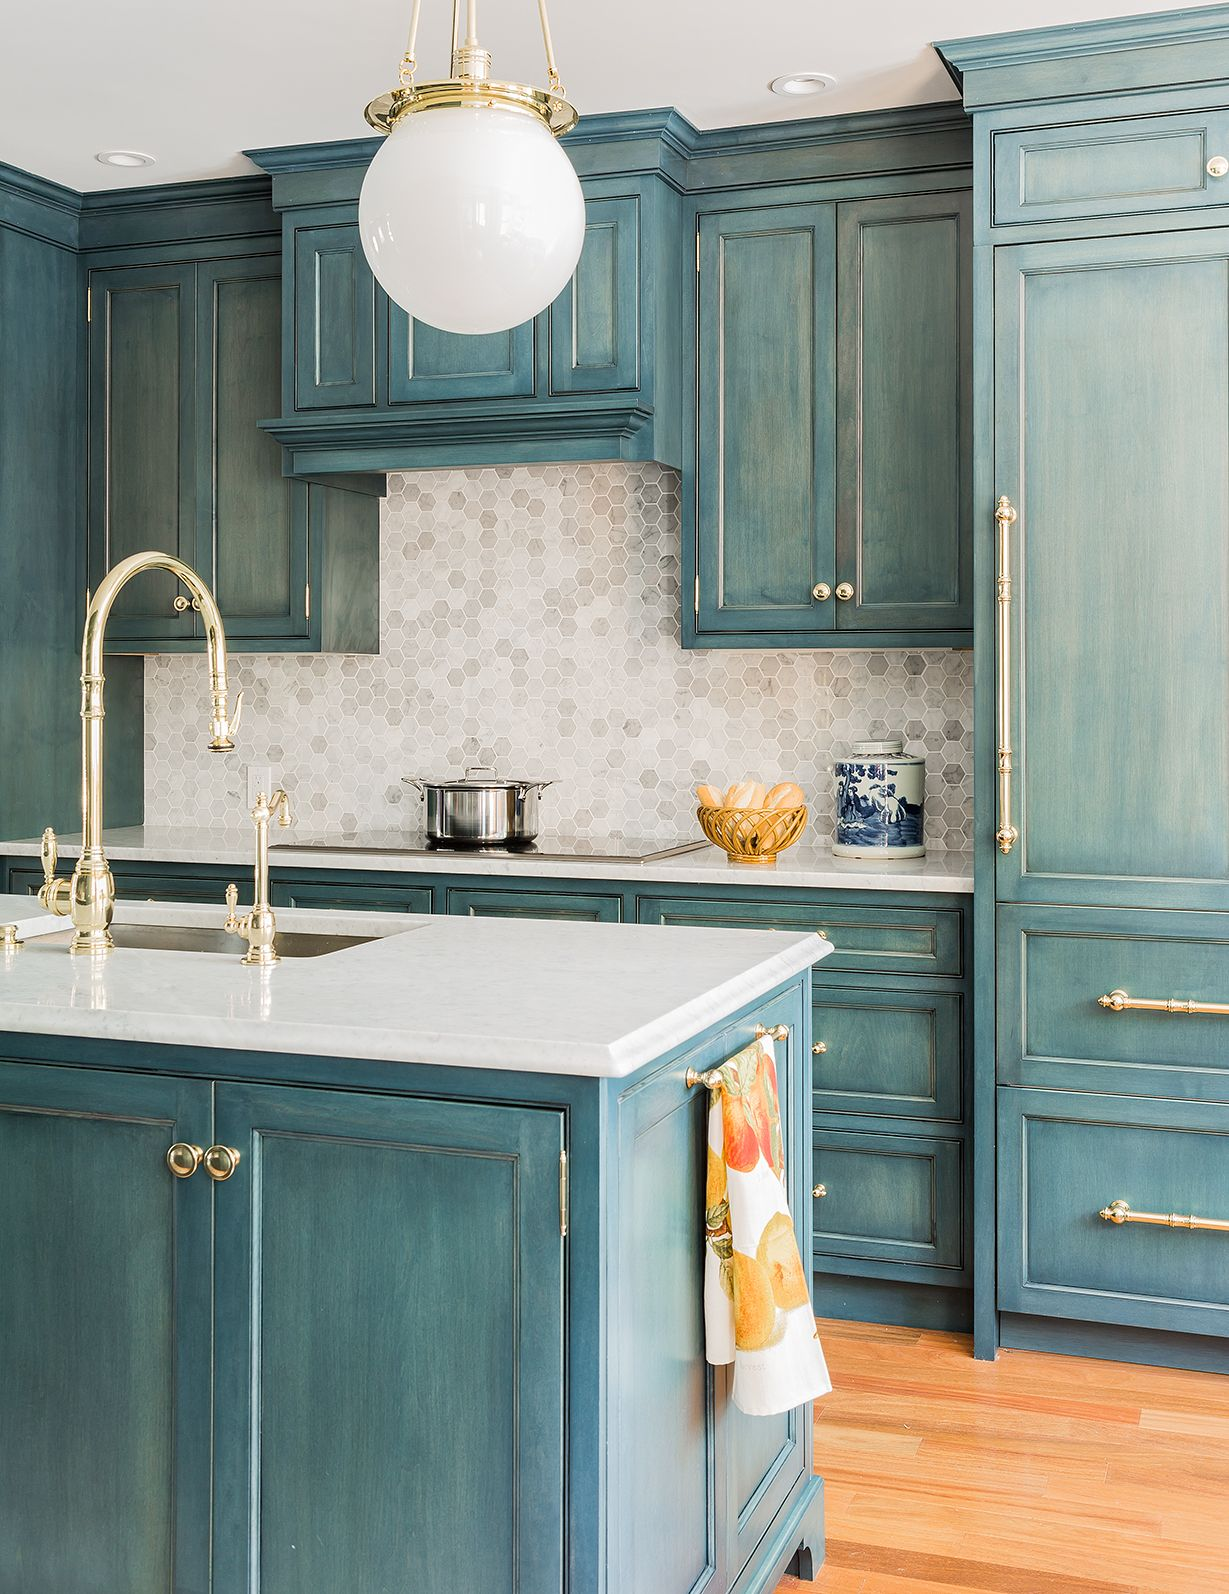 23 Gorgeous Blue Kitchen Cabinet Ideas Blue Kitchen Cabinets Kitchen Cabinet Colors Kitchen Design